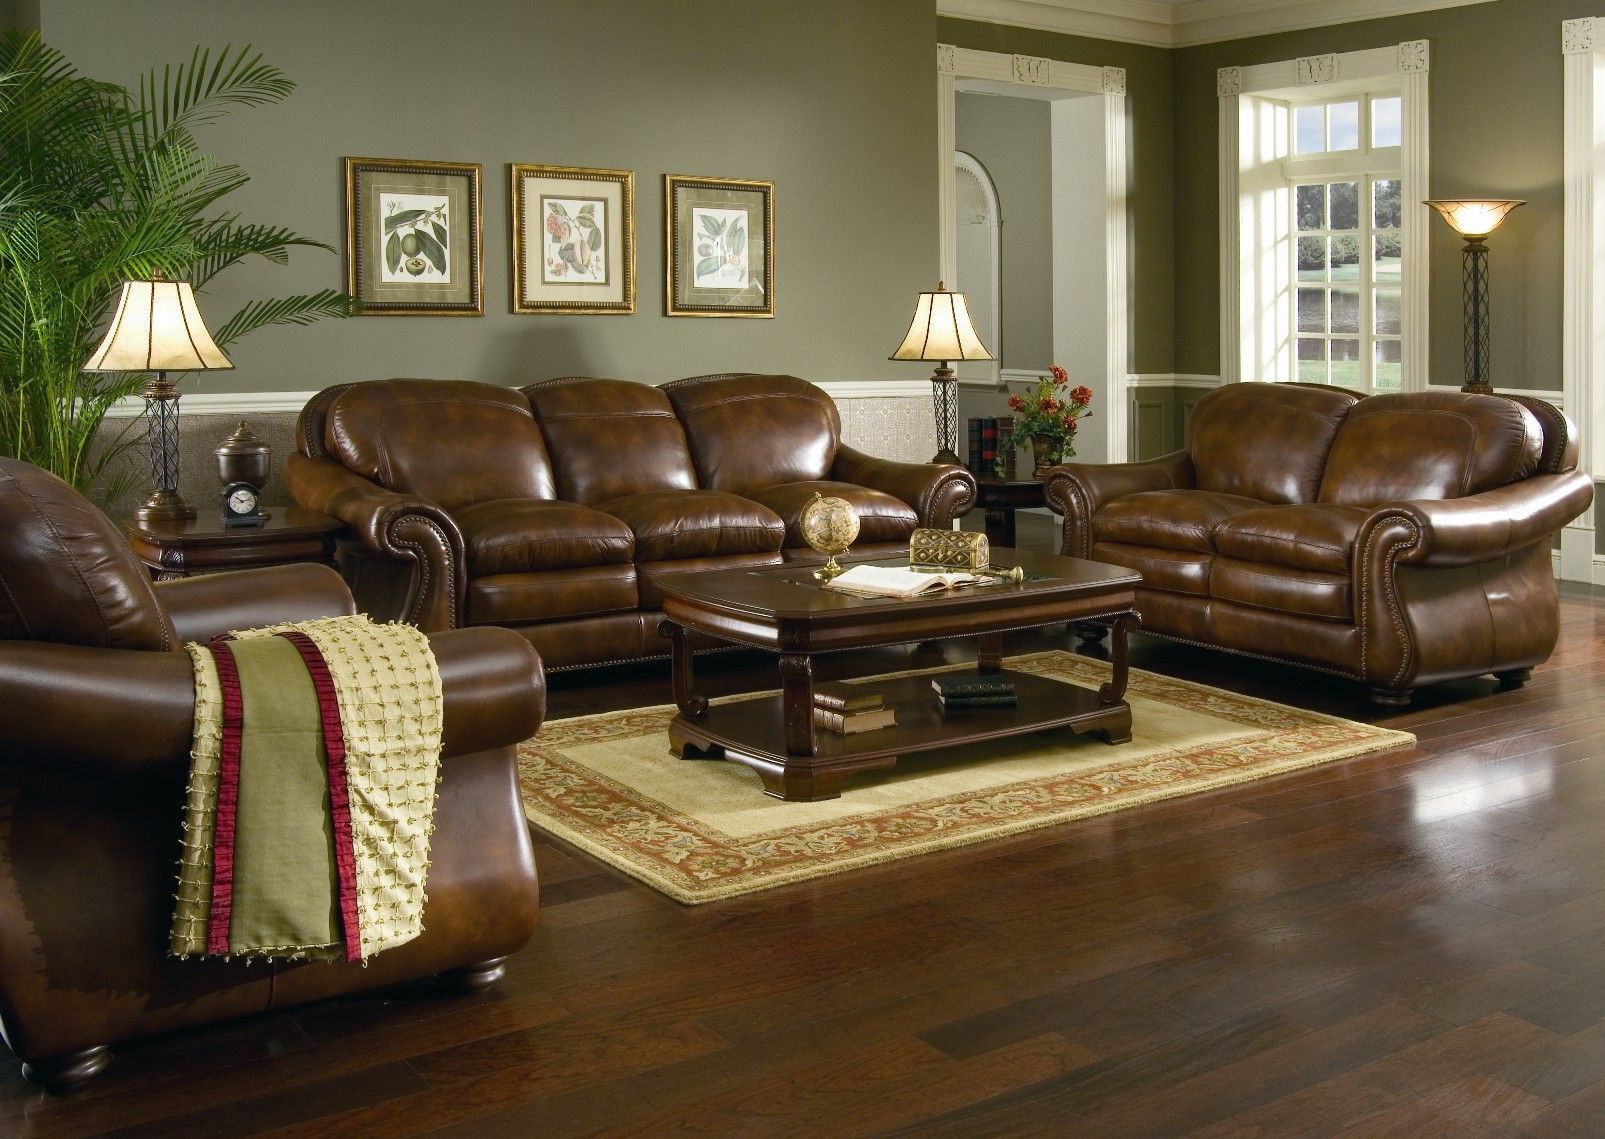 paint ideas living room brown furniture - Colors of Living Room Leather Sofa   Minimalist Home Decor Design Ideas